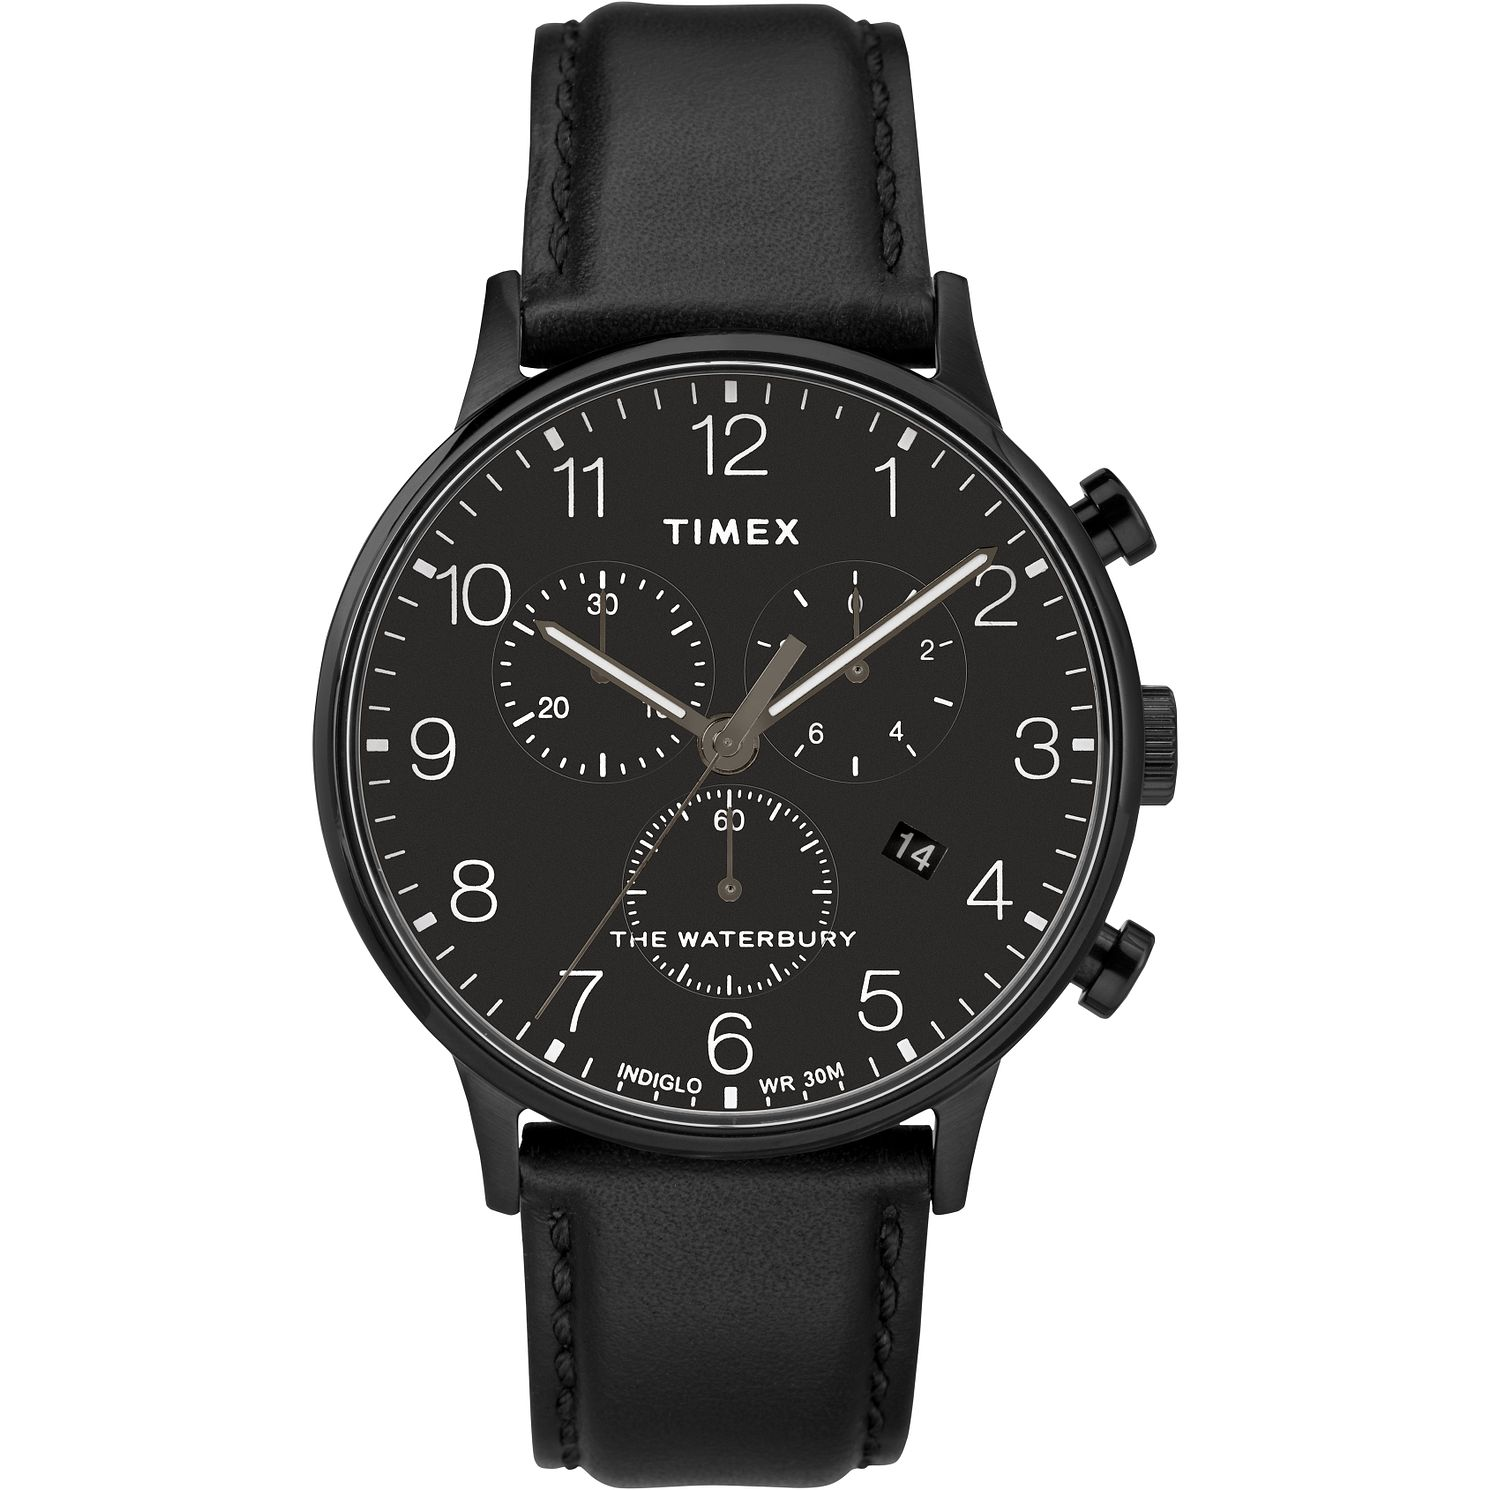 Timex Waterbury Classic Men's Black Leather Strap Watch - Product number 2374854